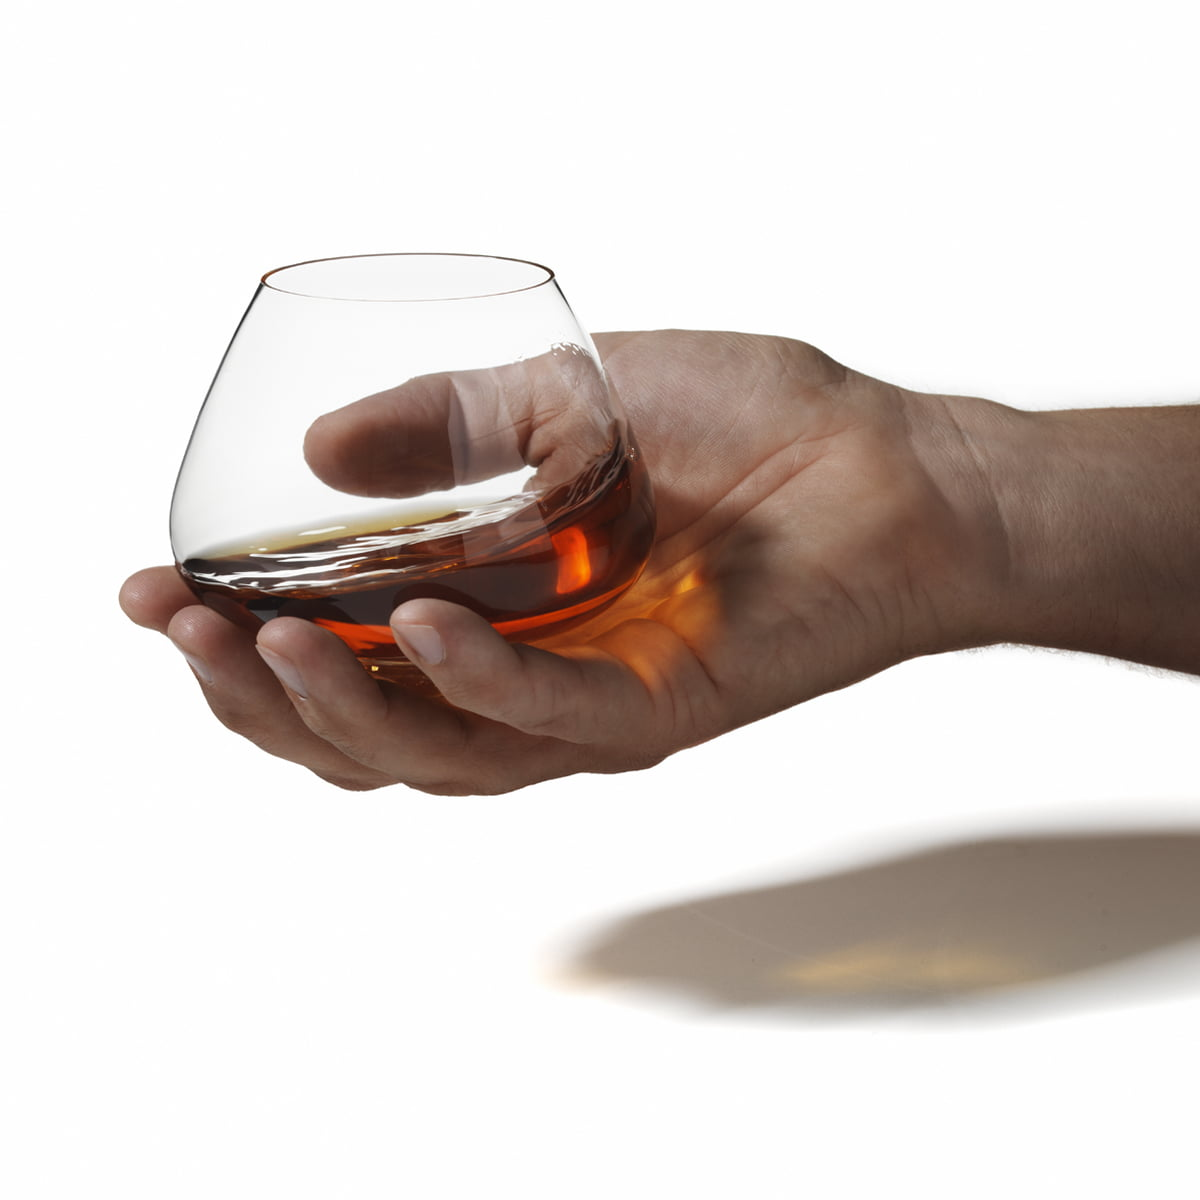 normann copenhagen liqueur glasses的圖片搜尋結果